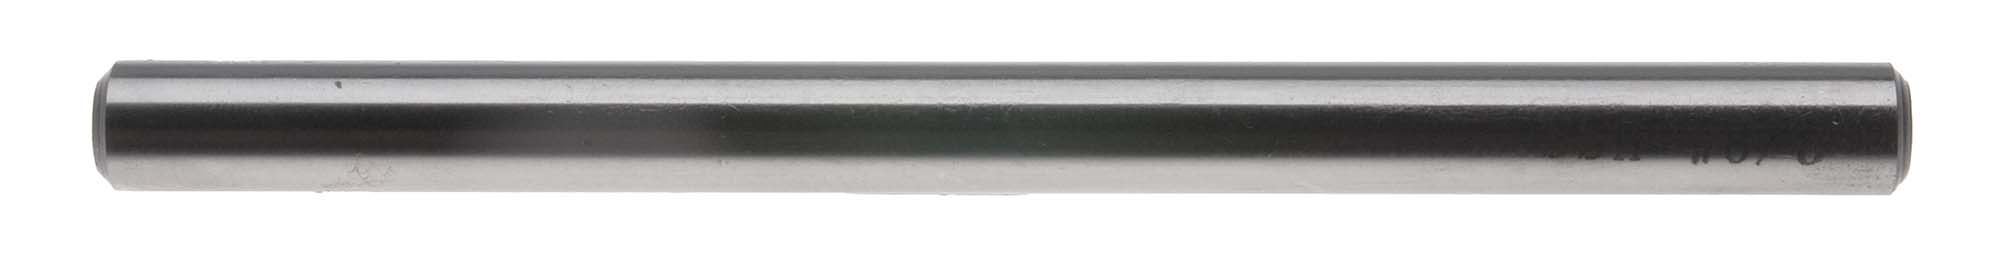 "#51 (.0670"") Jobber Length Drill Blank, High Speed Steel"